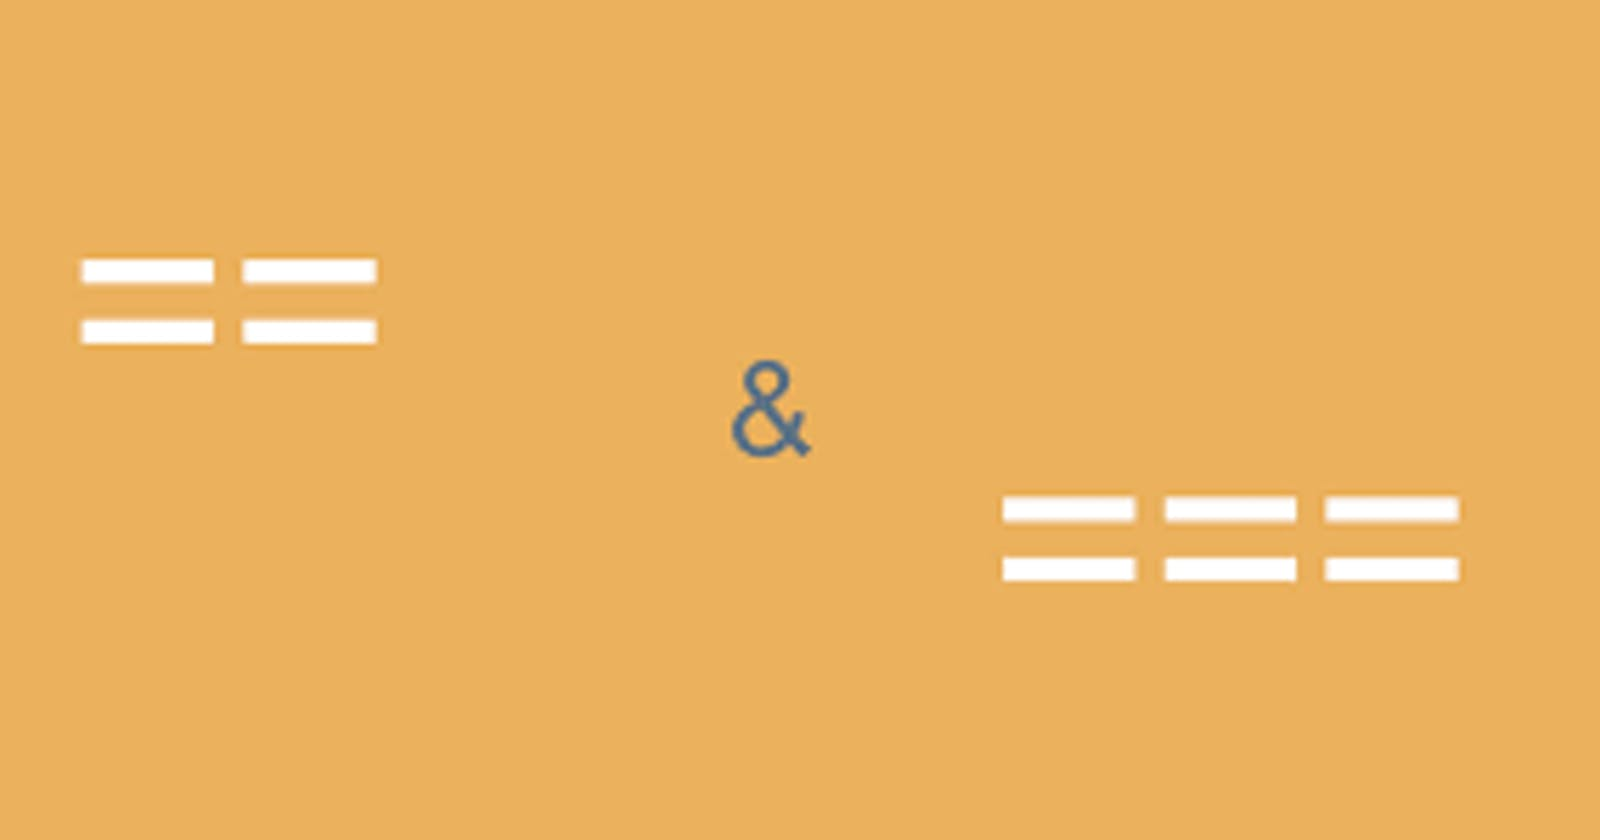 Difference Between == (equal) and === (comparison) Operators In Php